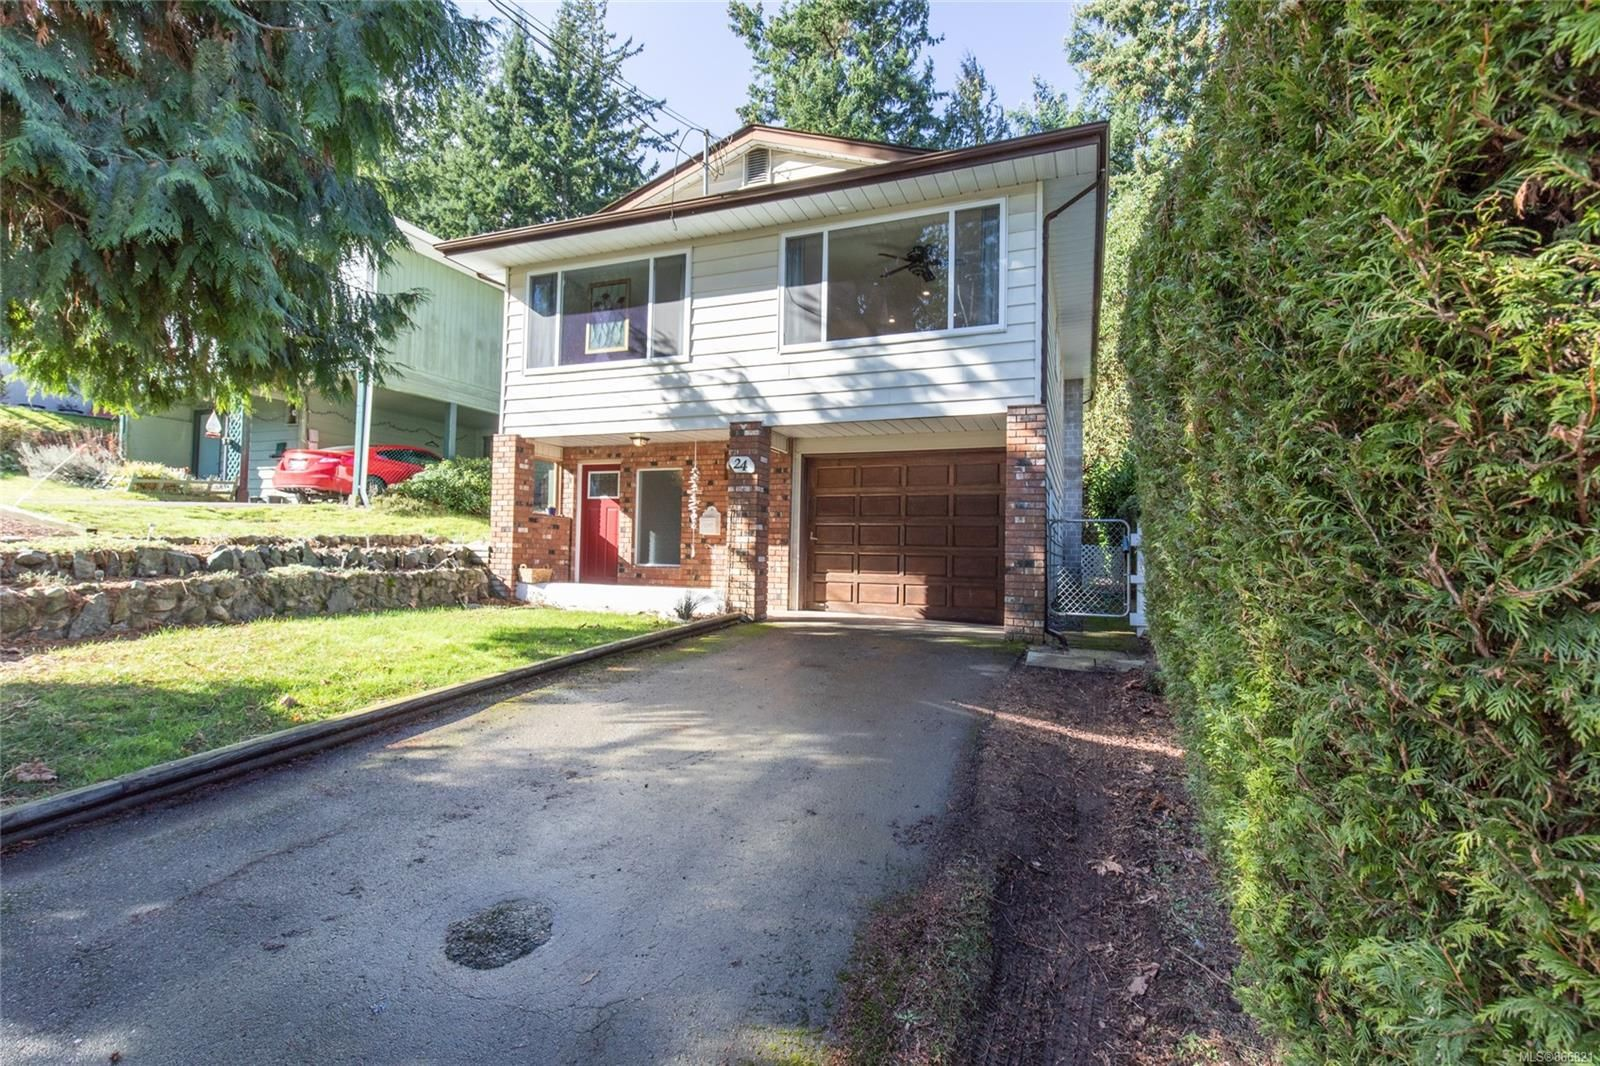 Main Photo: 24 Kanaka Pl in : Na North Nanaimo House for sale (Nanaimo)  : MLS®# 866821